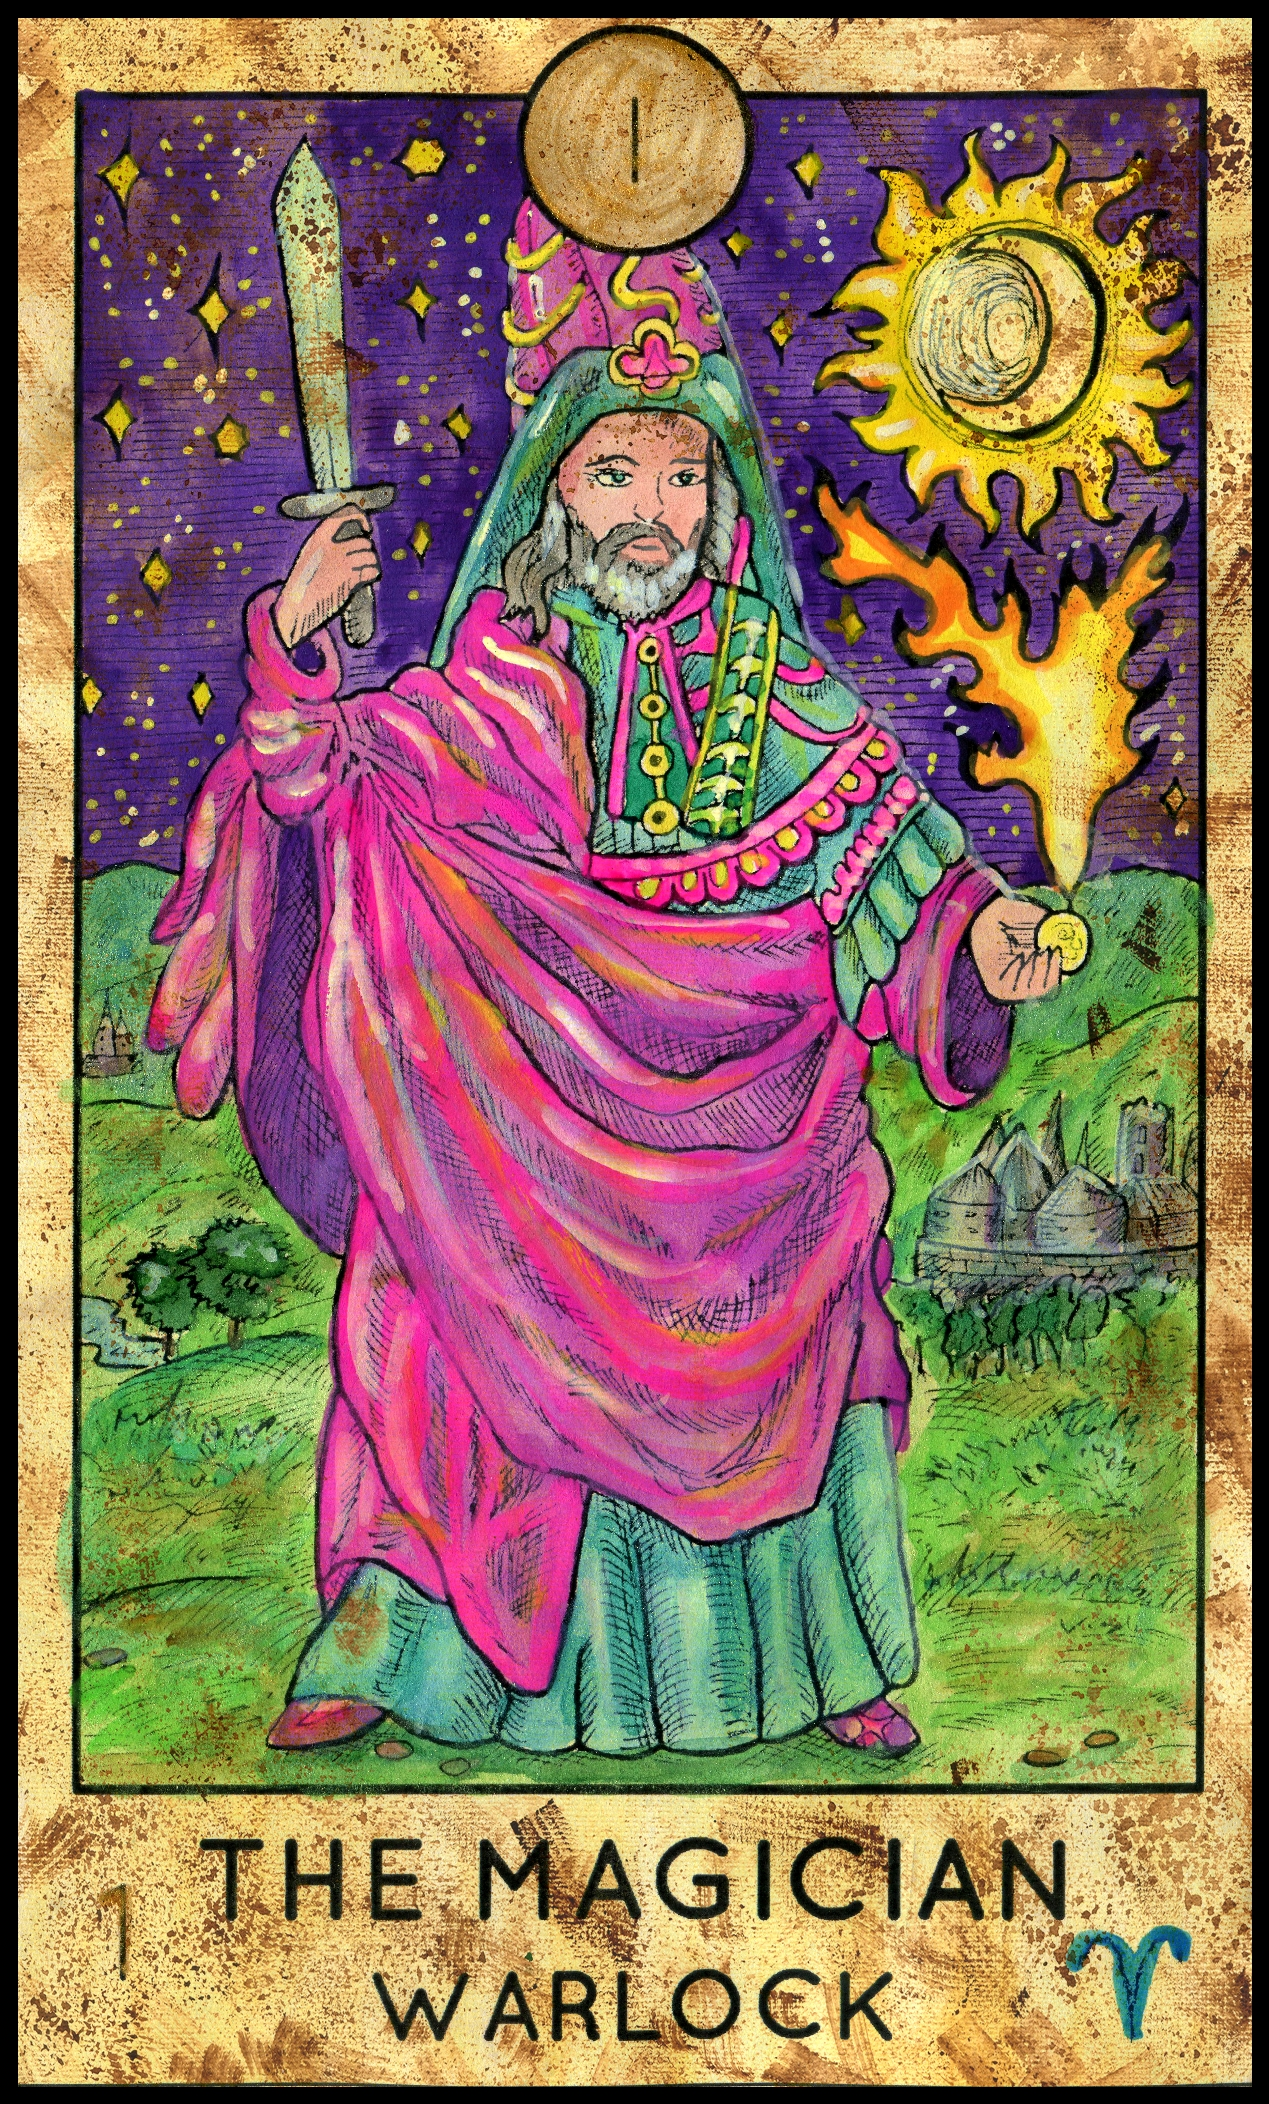 Tarot Oracle Answer: The Magician